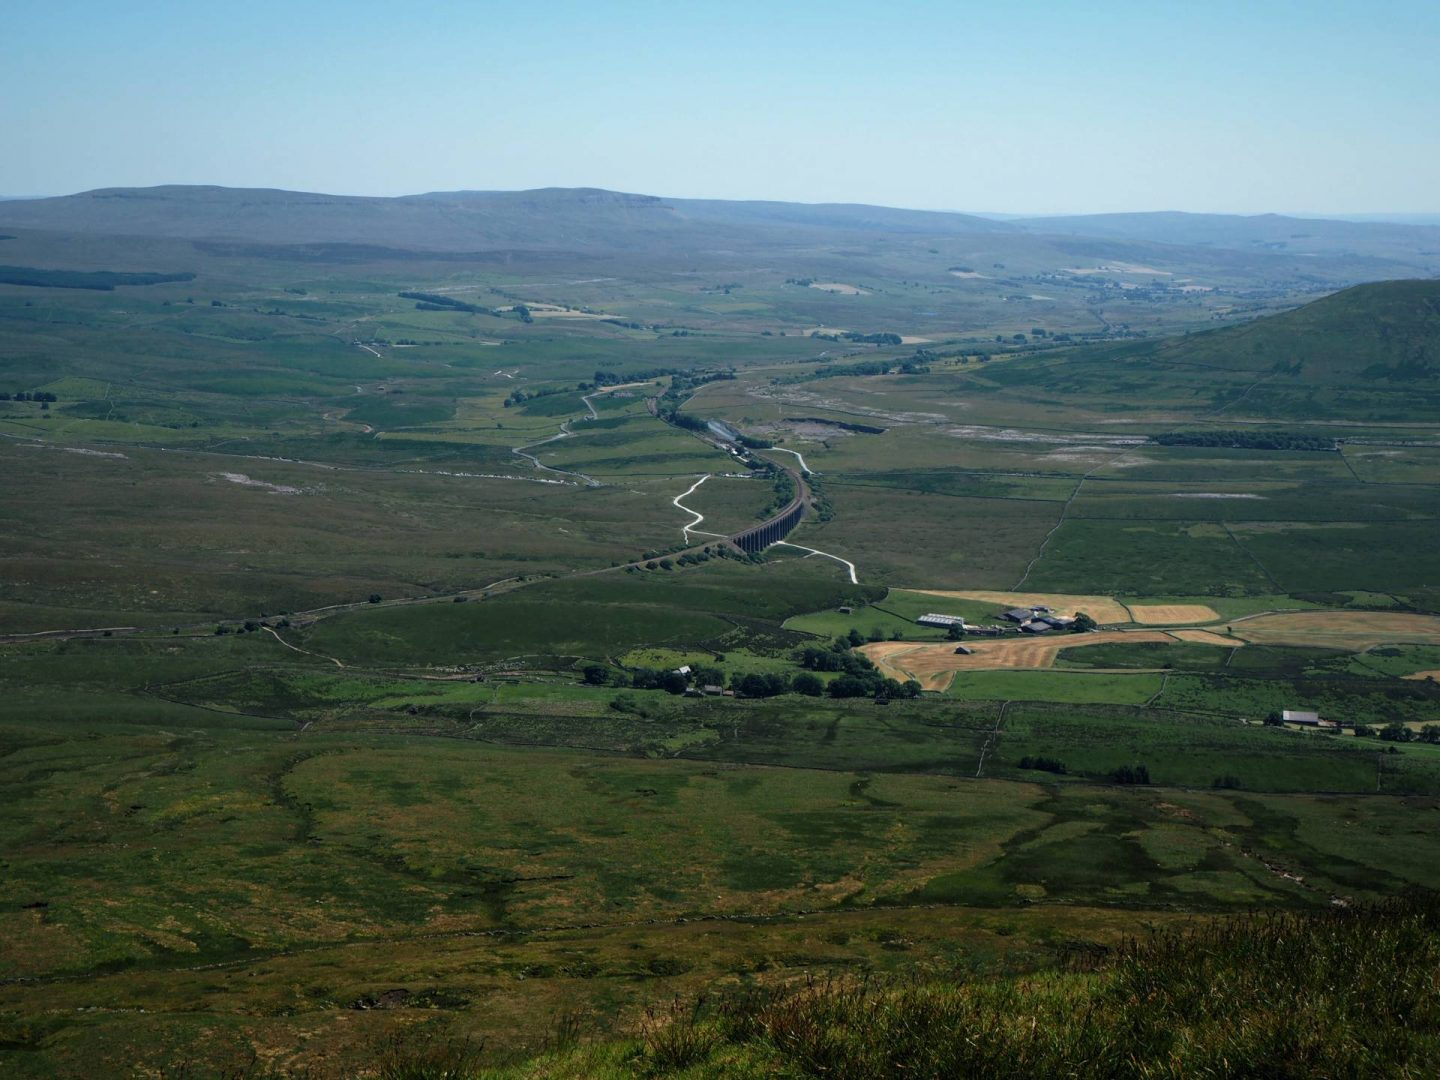 View from Whernside in the Yorkshire Dales